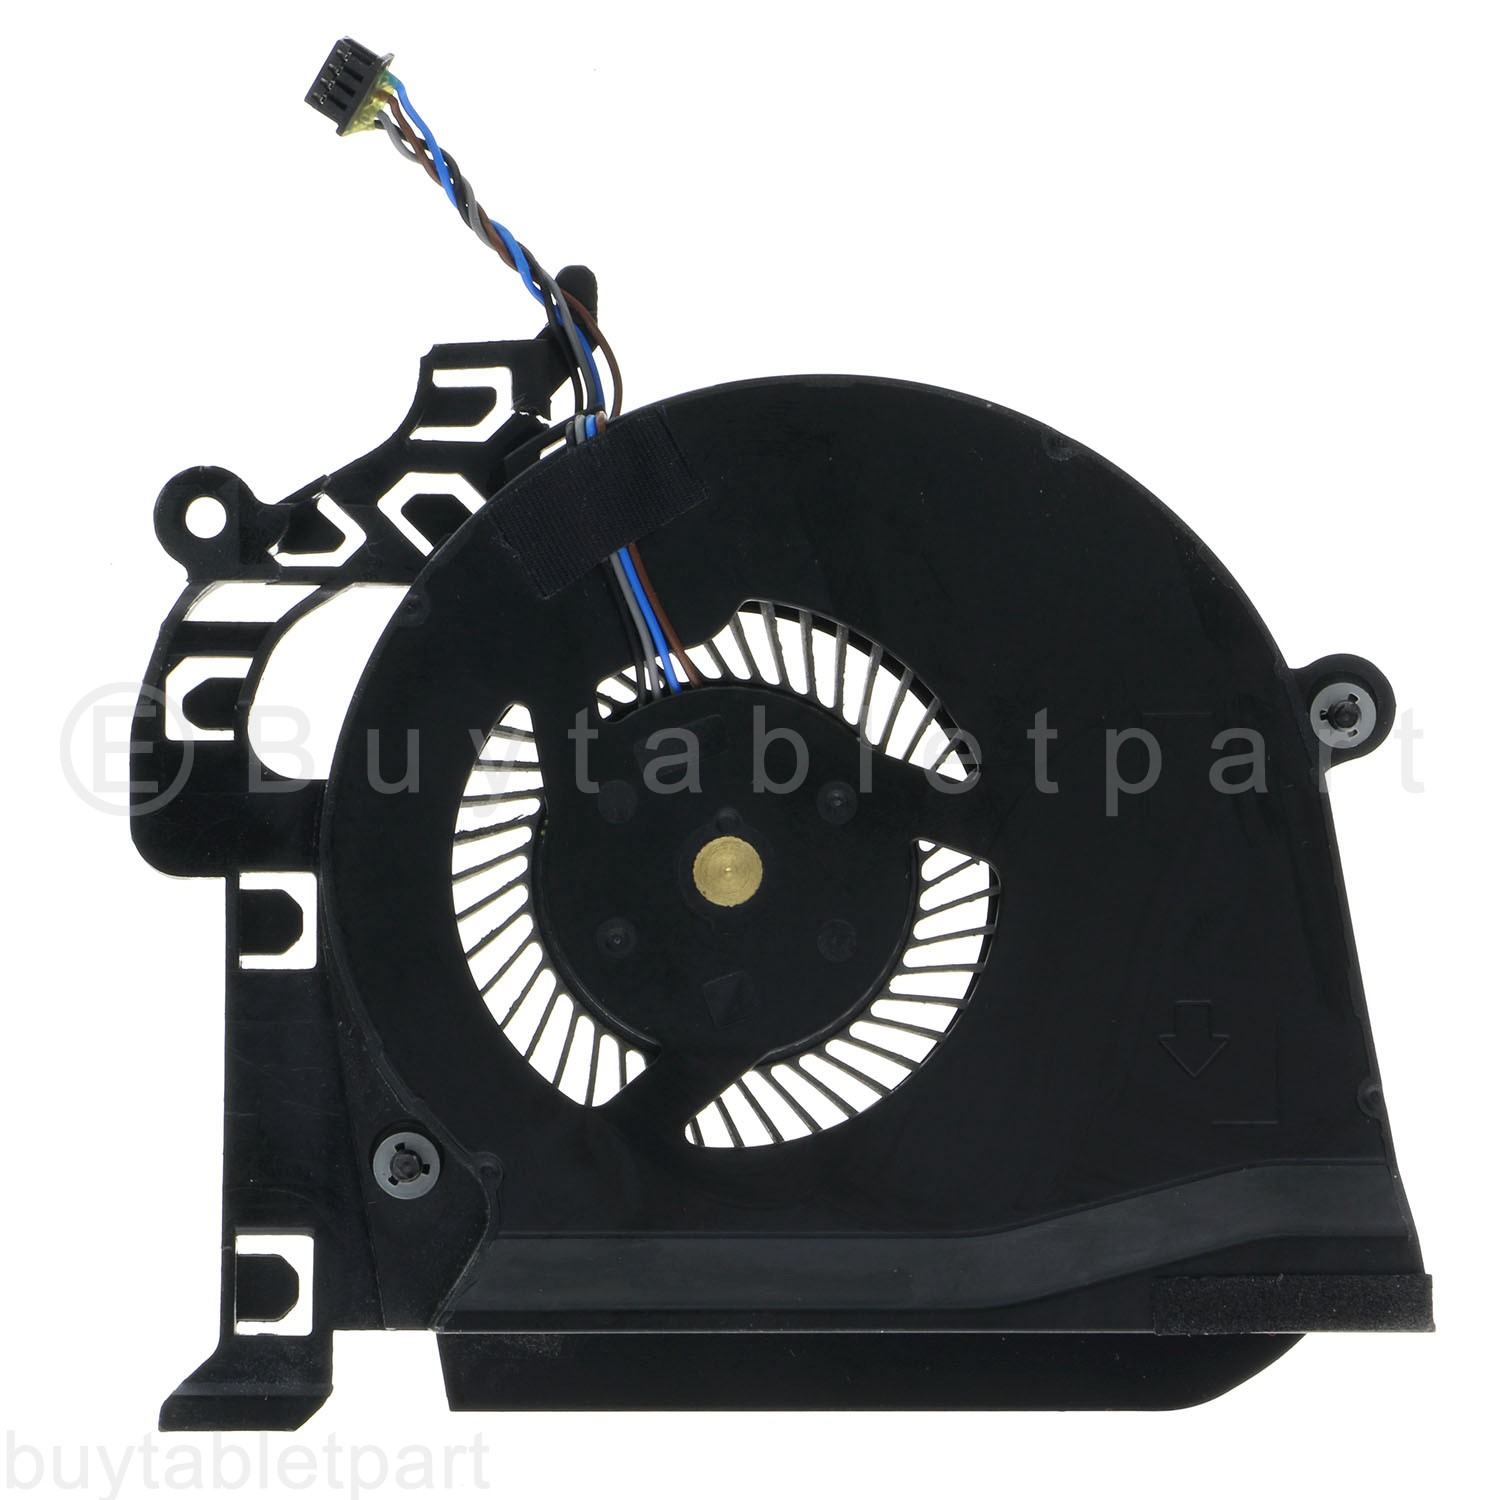 Givwizd Replacement CPU Cooling Fan Compatible HP Pavilion 15-cc521tx 15-cc521ur 15-cc522ur 15-cc523ca 15-cc524ur 15-cc528ur 15-cc531ur 15-cc532ur 15-cc533ur 15-cc534ur 15-cc535ur 15-cc538na